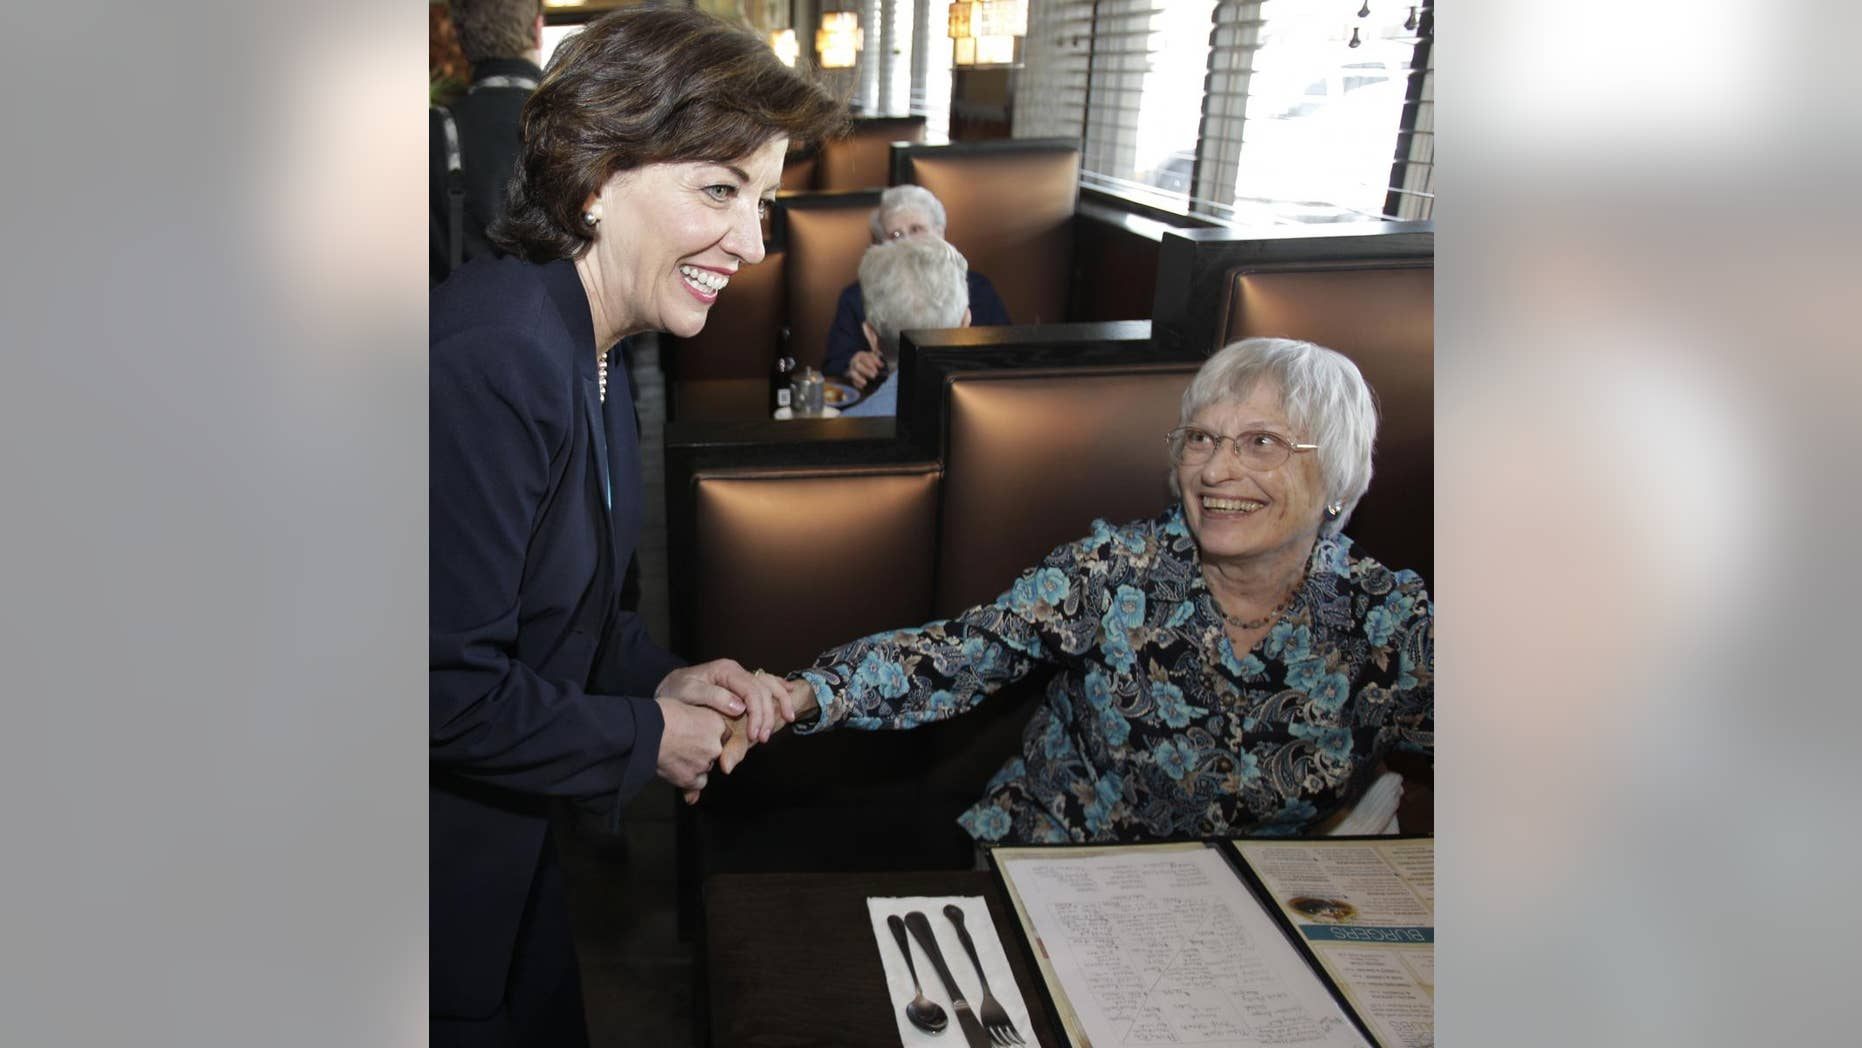 Congresswoman-elect Kathy Hochul, D-NY, left, thanks customers for their support at a restaurant in Depew, N.Y., Wednesday, May 25, 2011. (AP Photo/David Duprey)